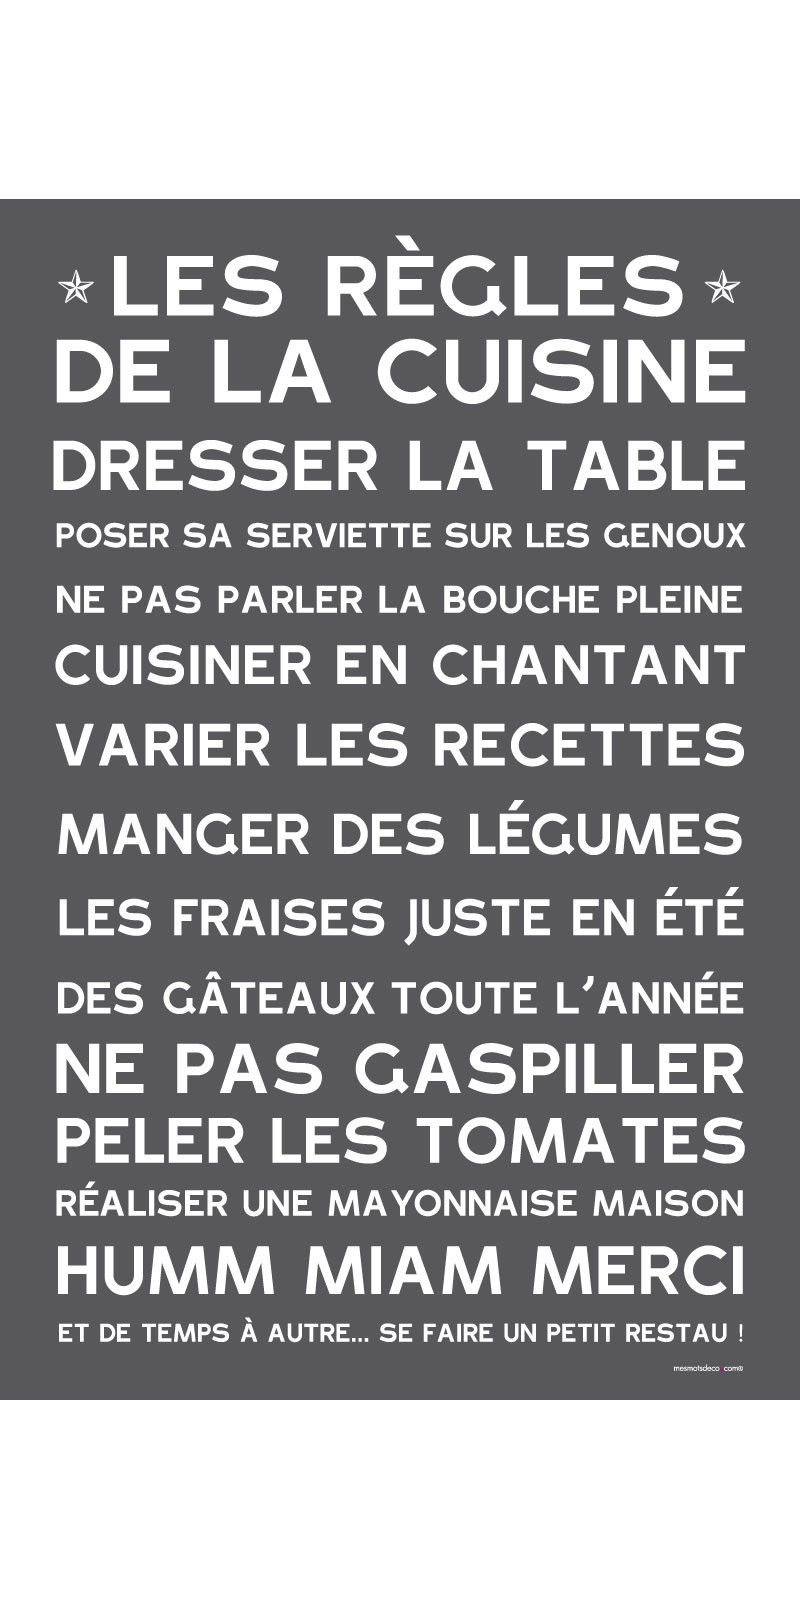 manifeste de la cuisine ardoise citation pinterest organizations messages and kitchens. Black Bedroom Furniture Sets. Home Design Ideas